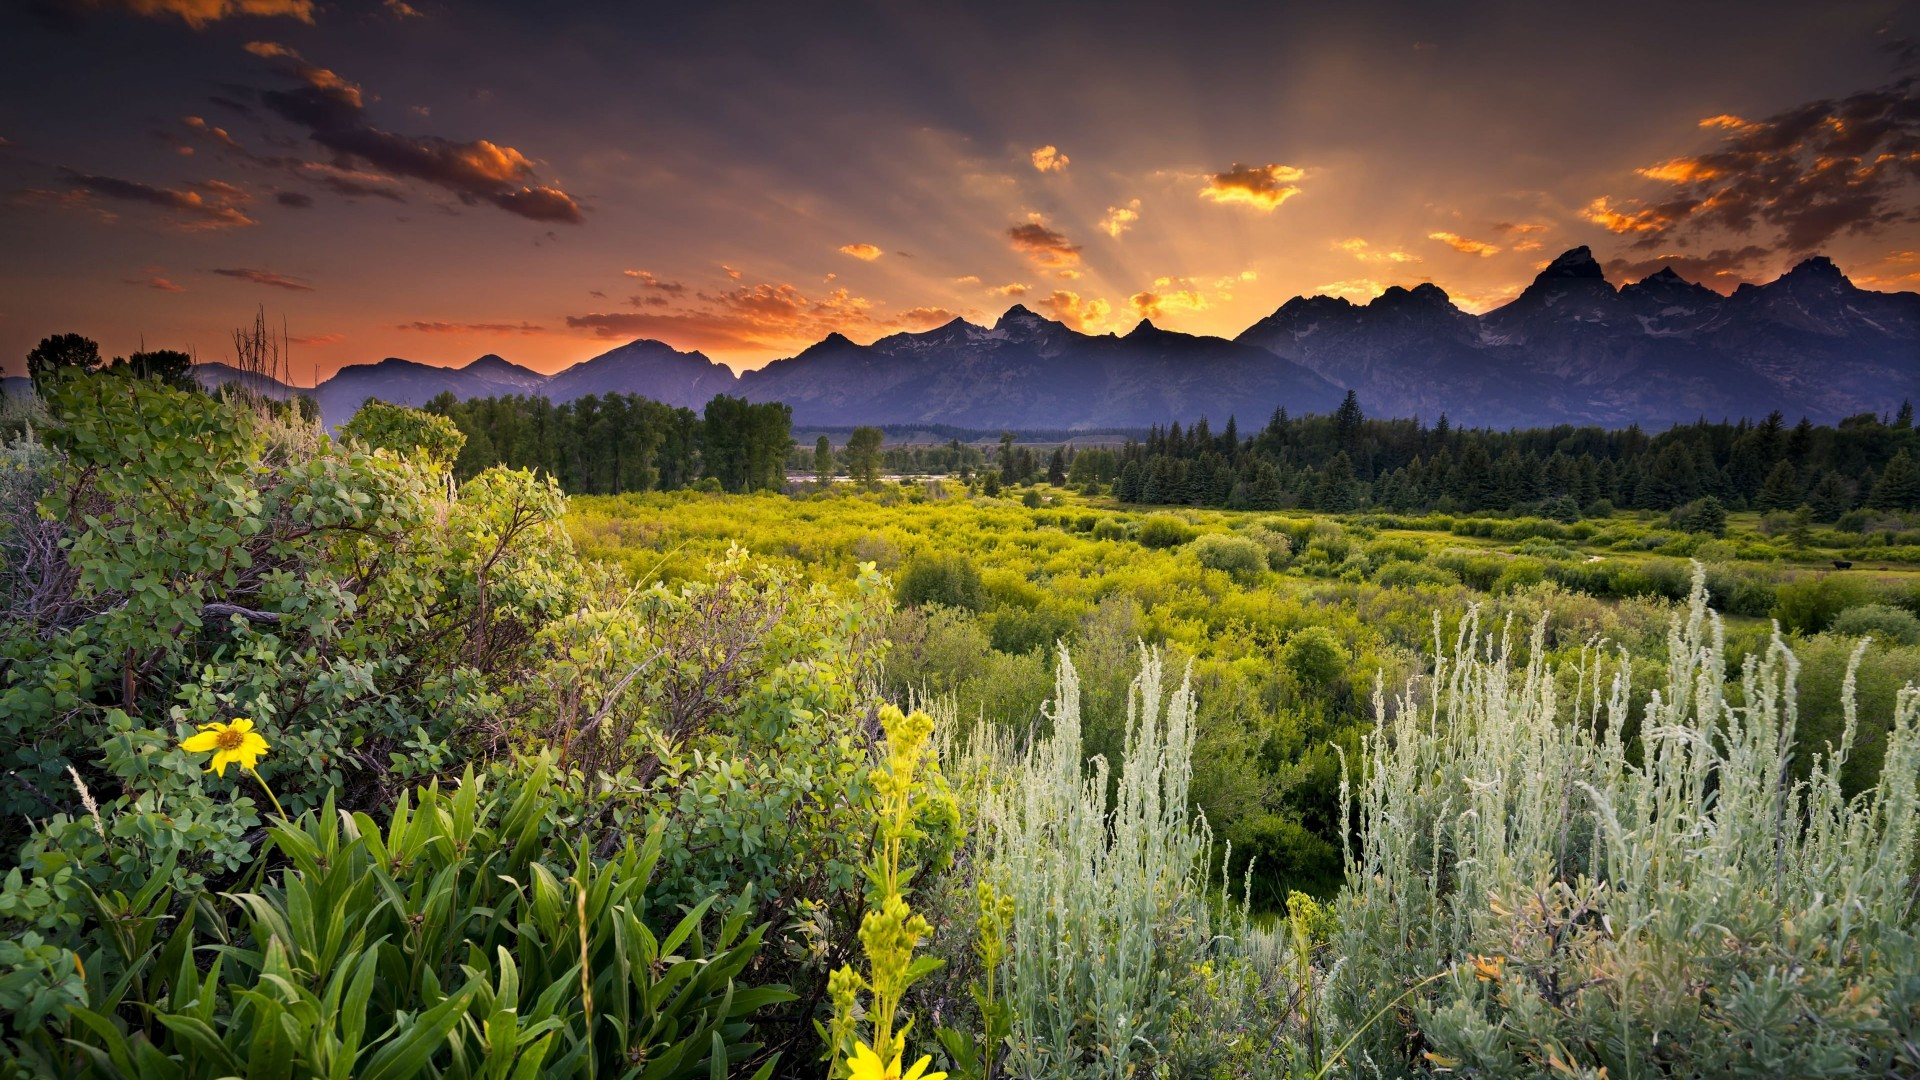 Sunset in Grand Teton National Park Wallpaper for Desktop 1920x1080